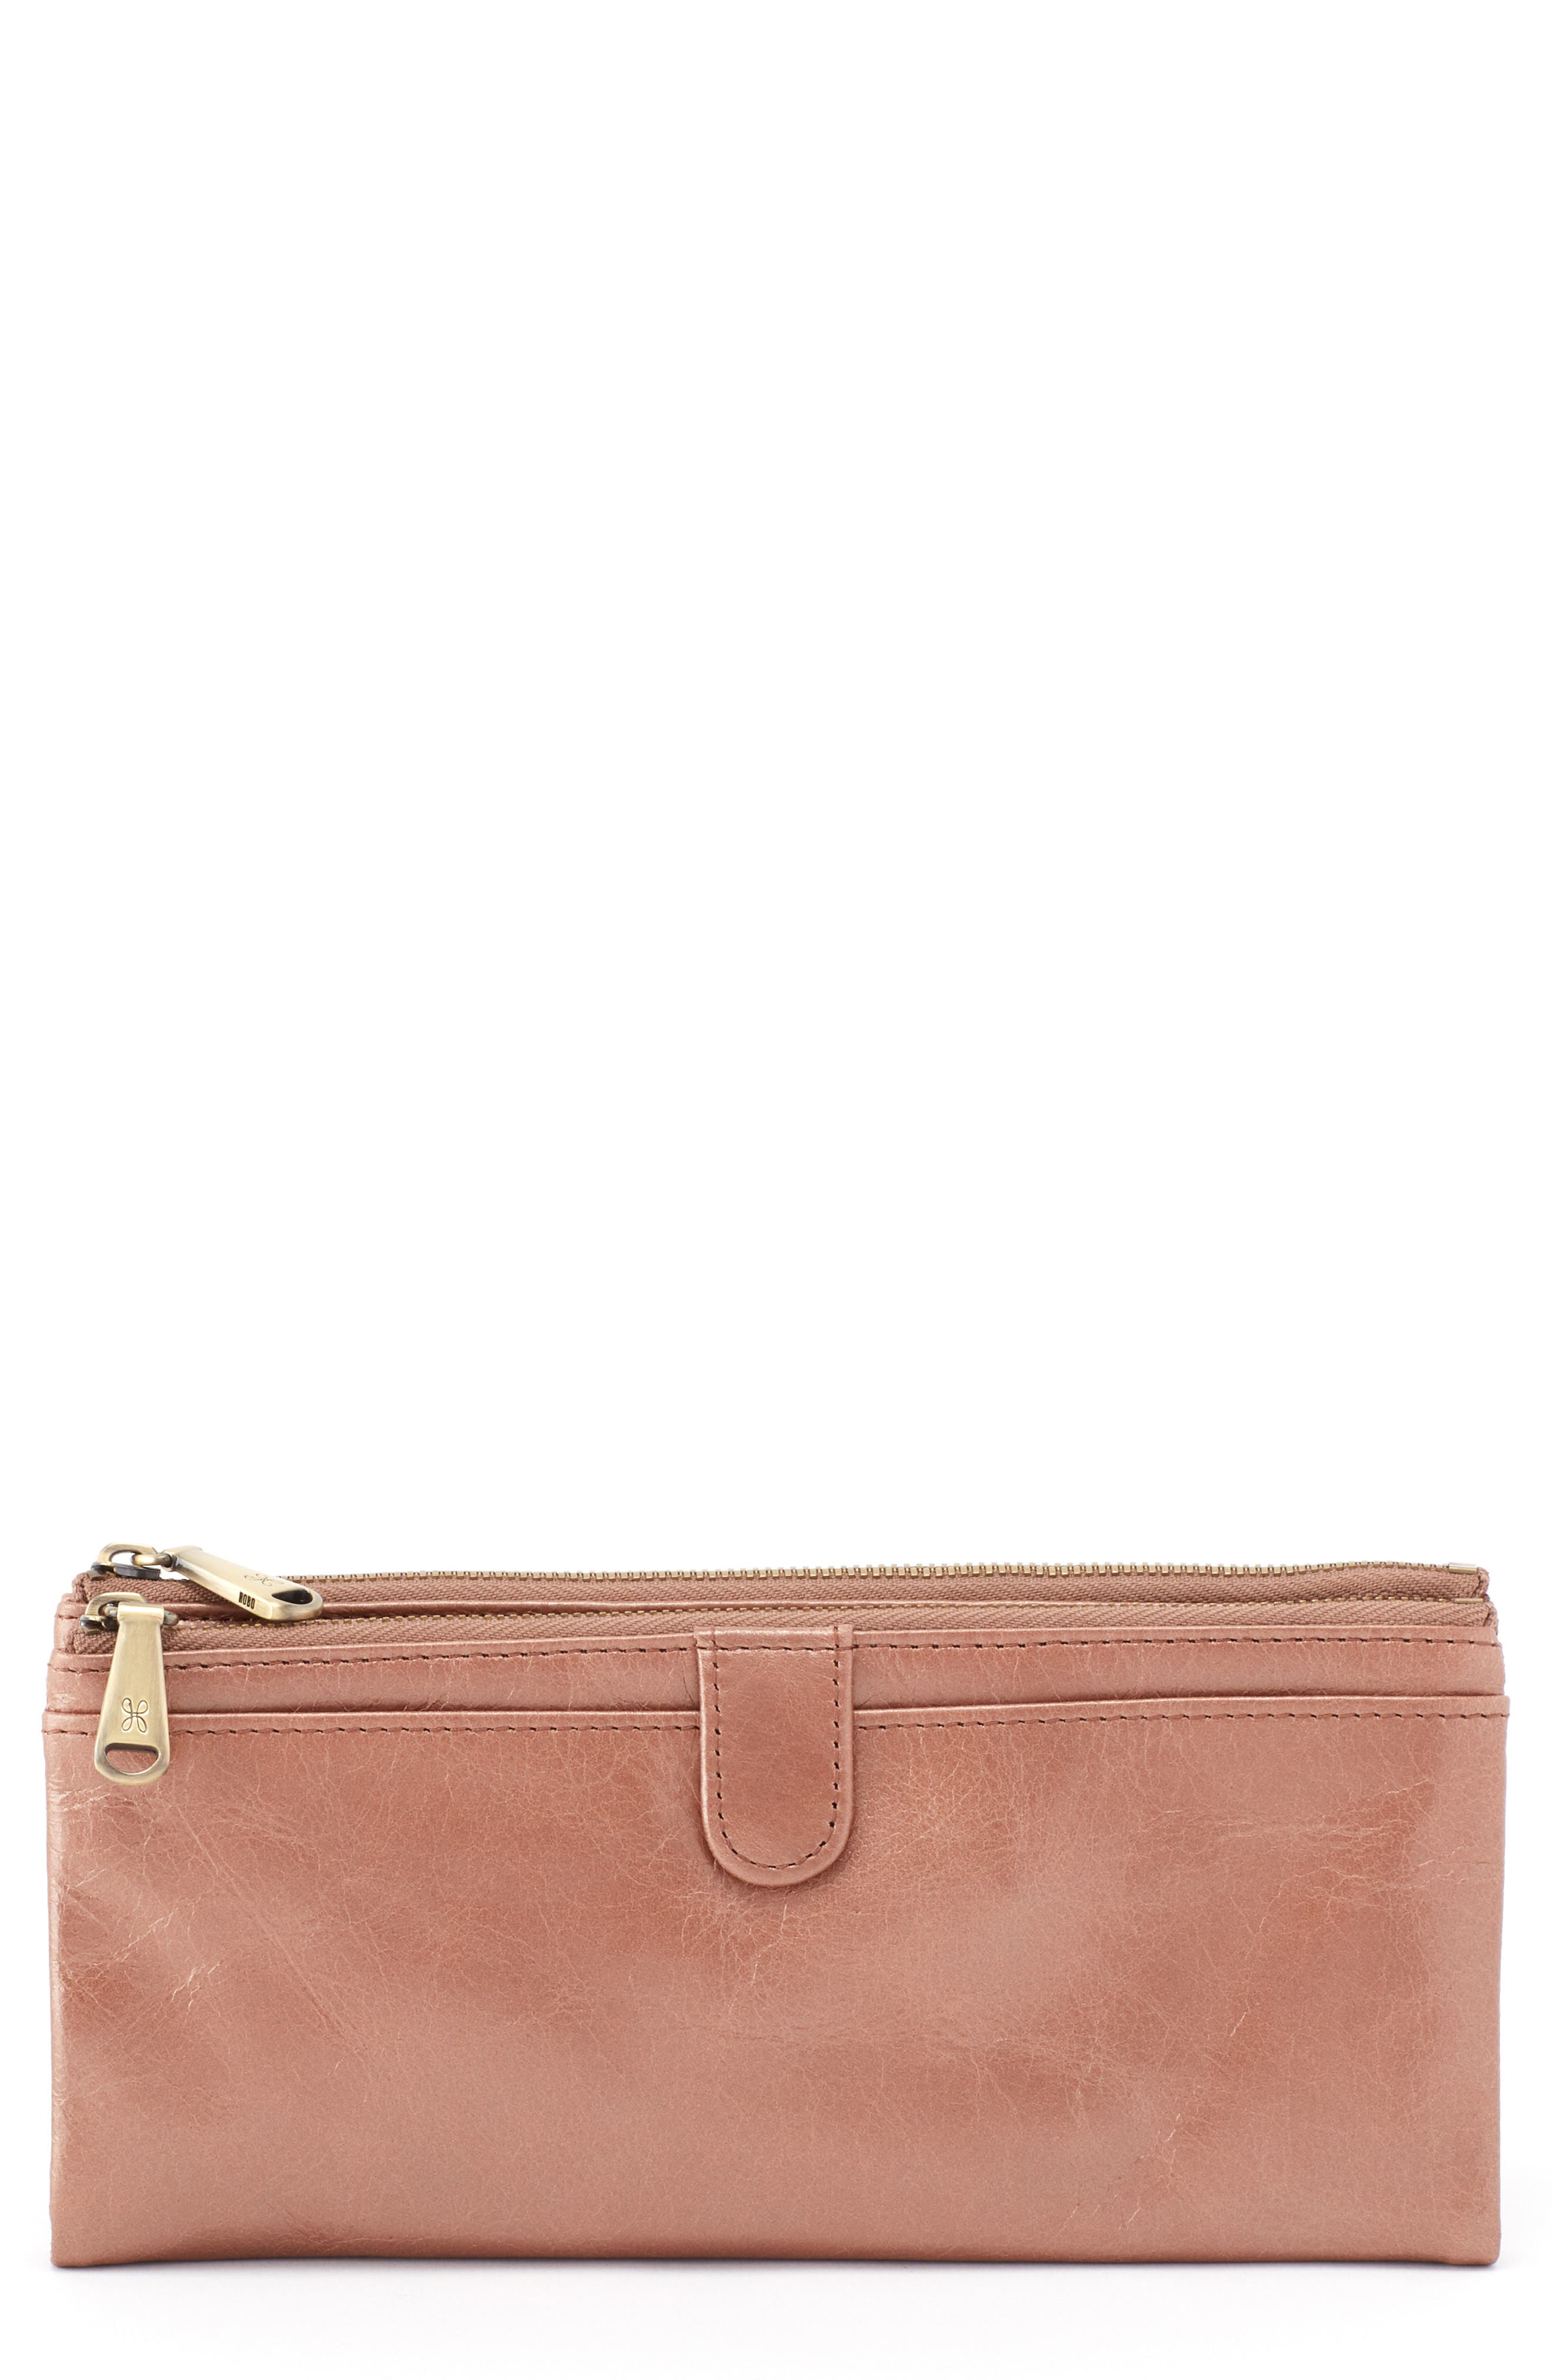 Taylor Glazed Wallet,                         Main,                         color, CAMEO